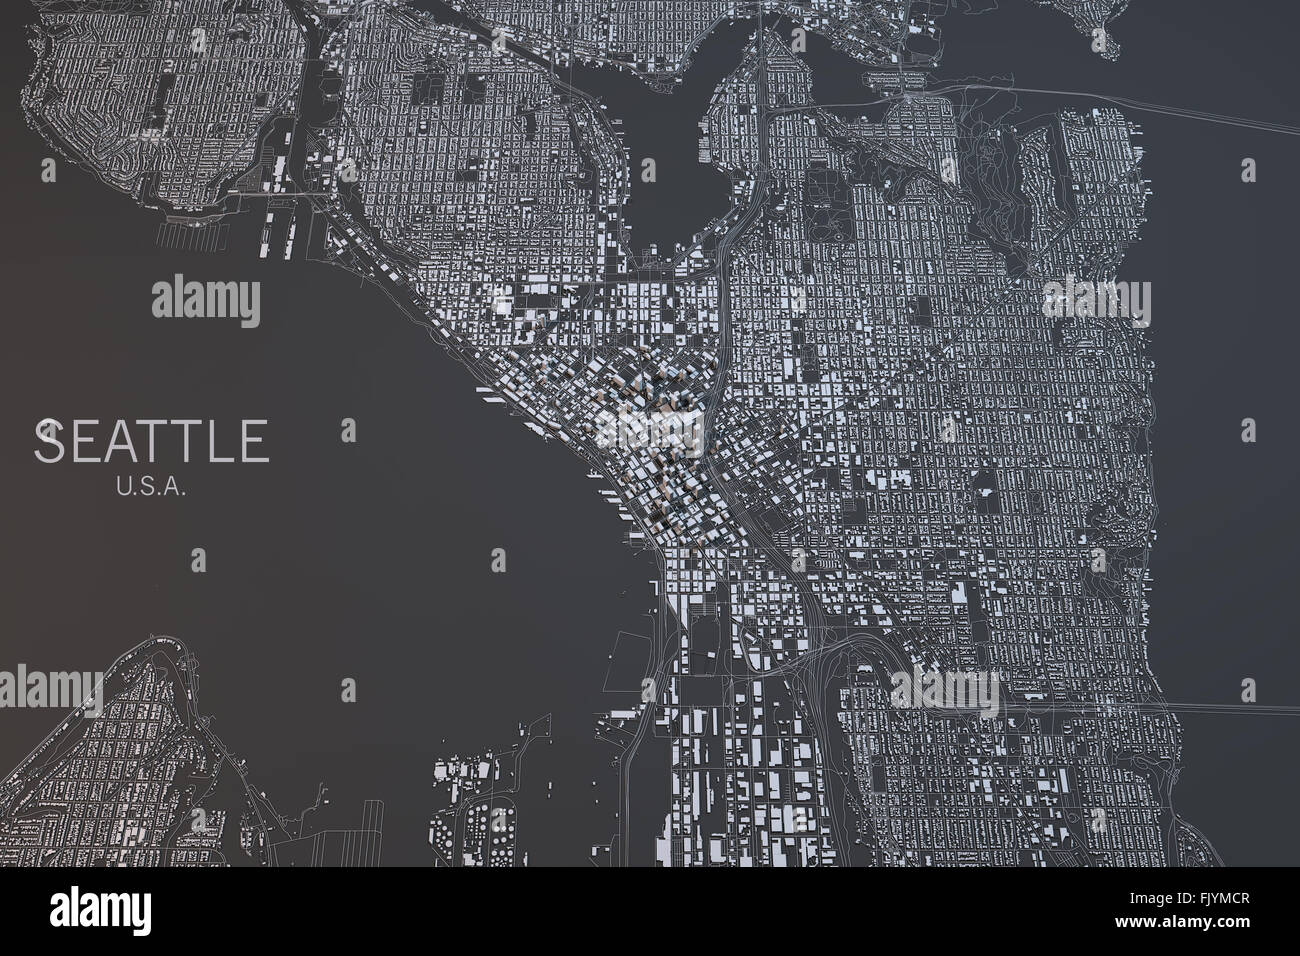 Seattle map, satellite view, Usa Stock Photo: 97724391 - Alamy on